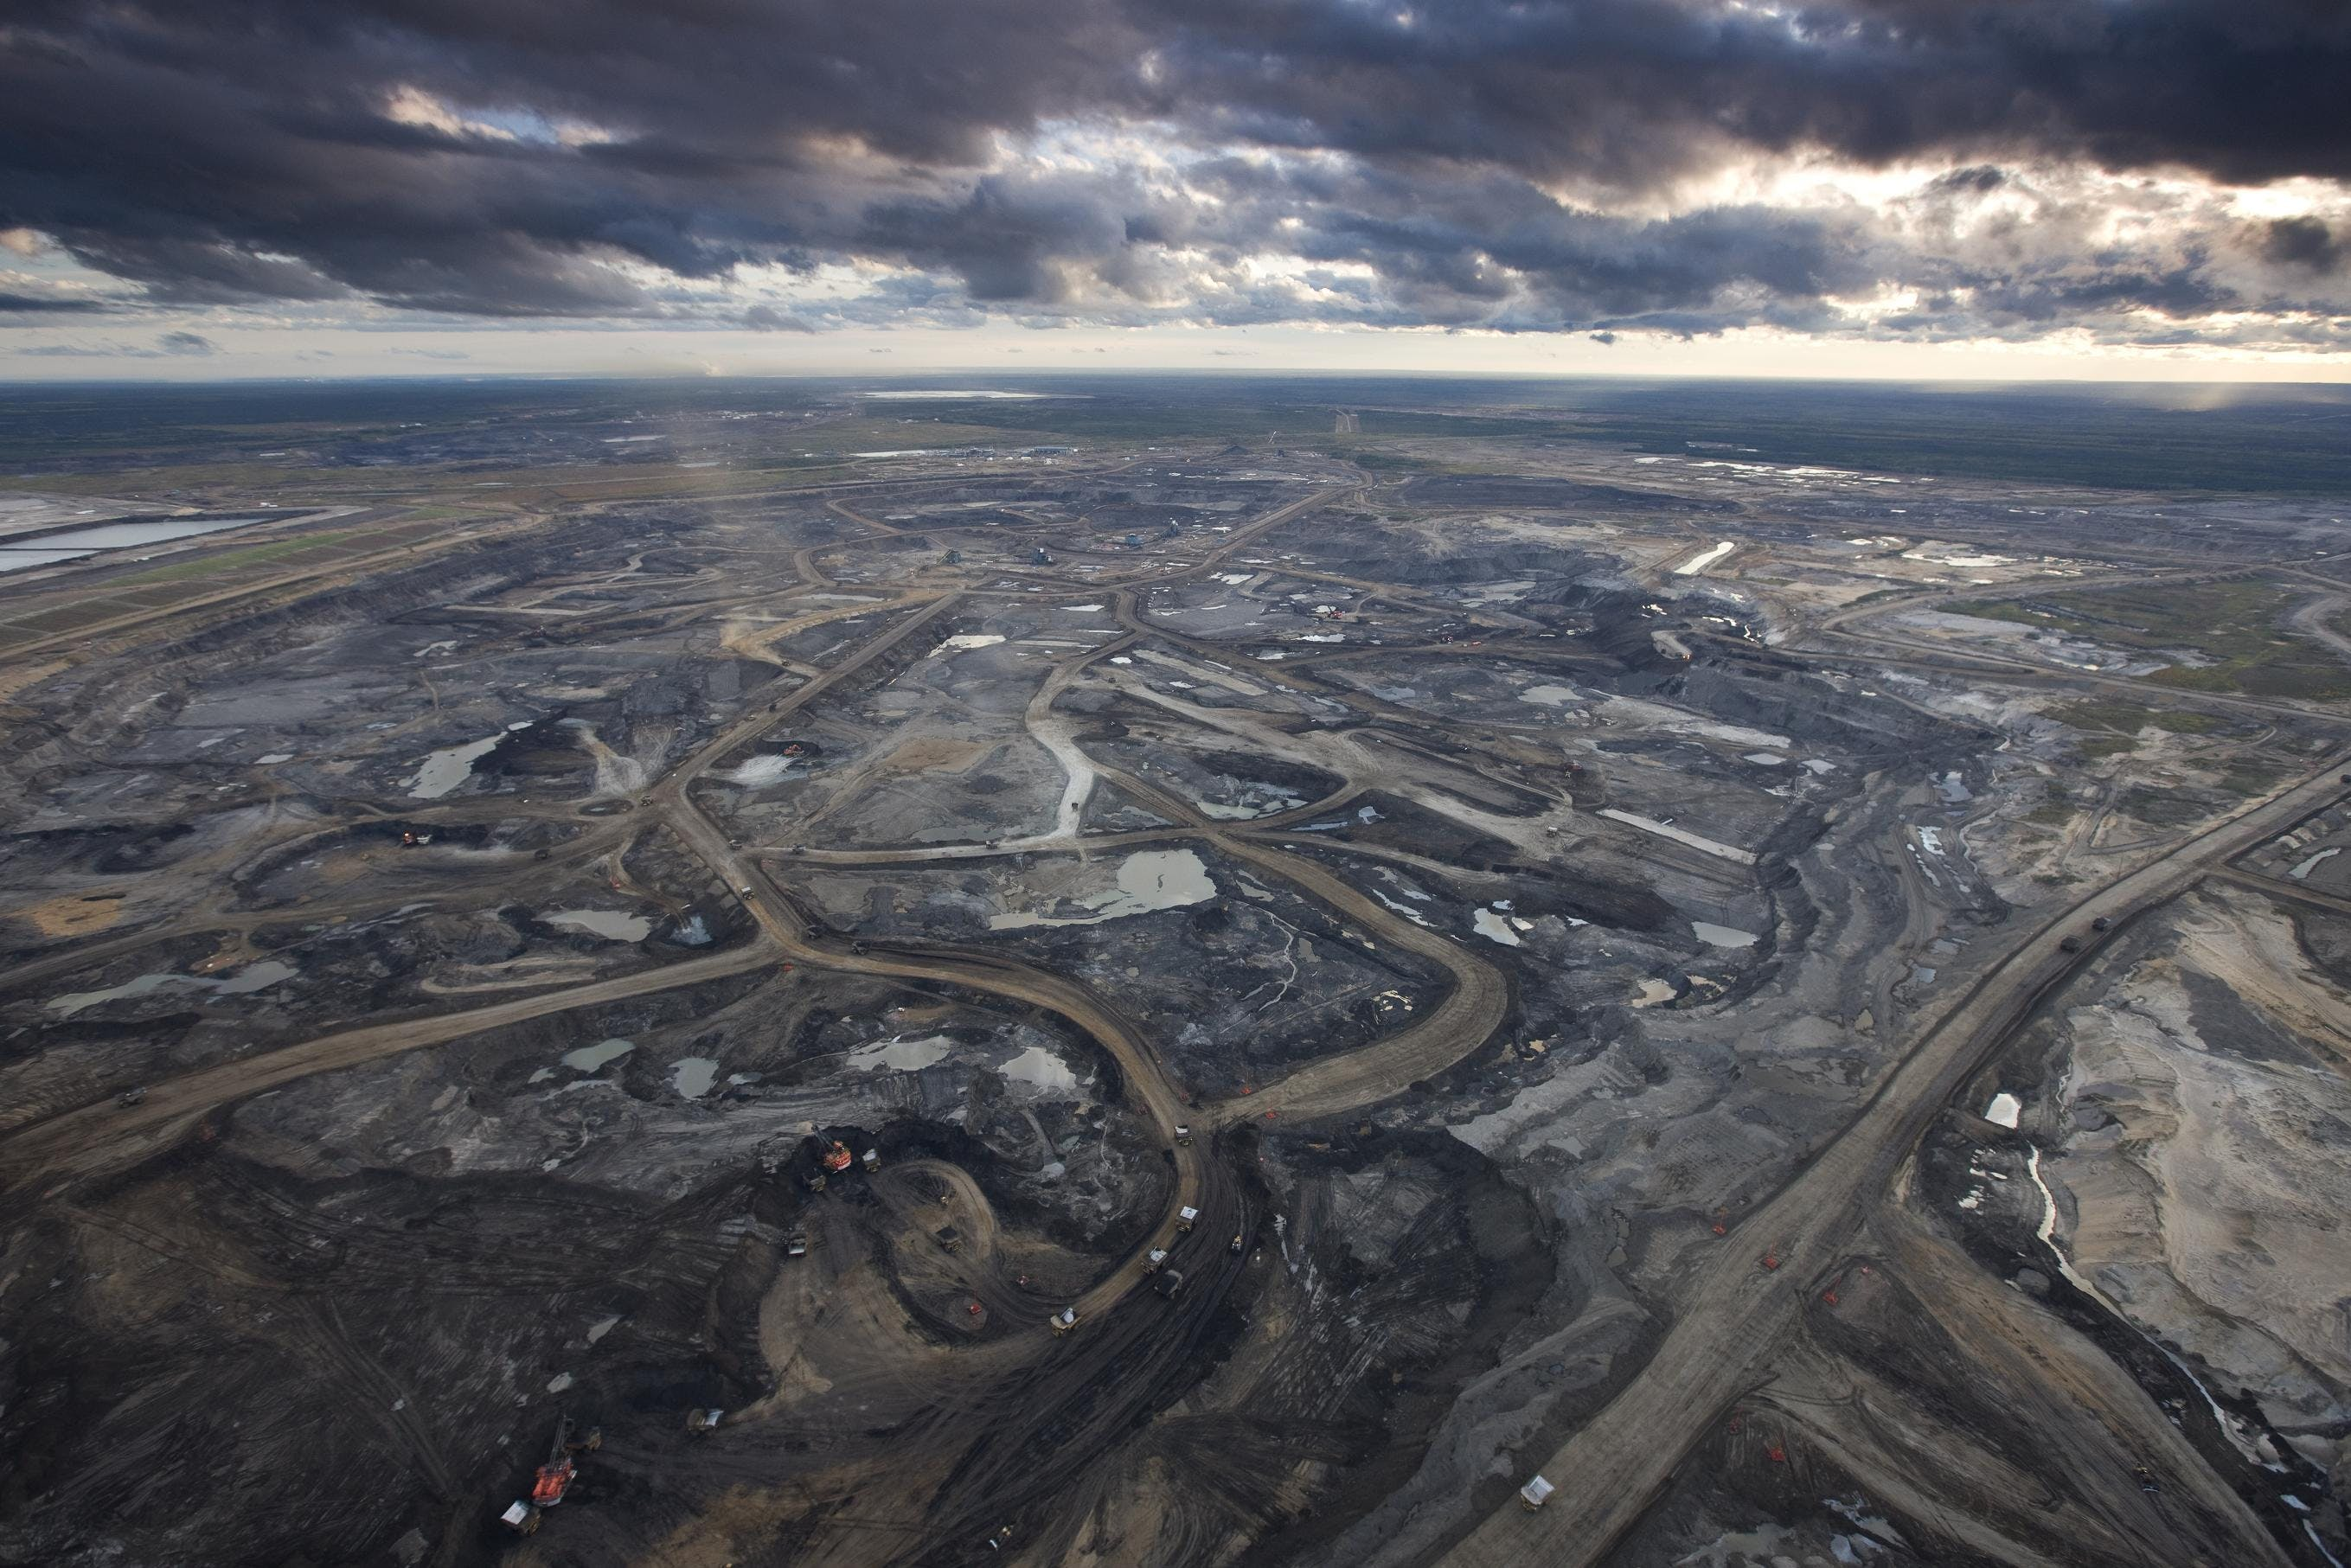 The polluted wasteland created by extracting the most polluting of all fossil fuels - tar sands.